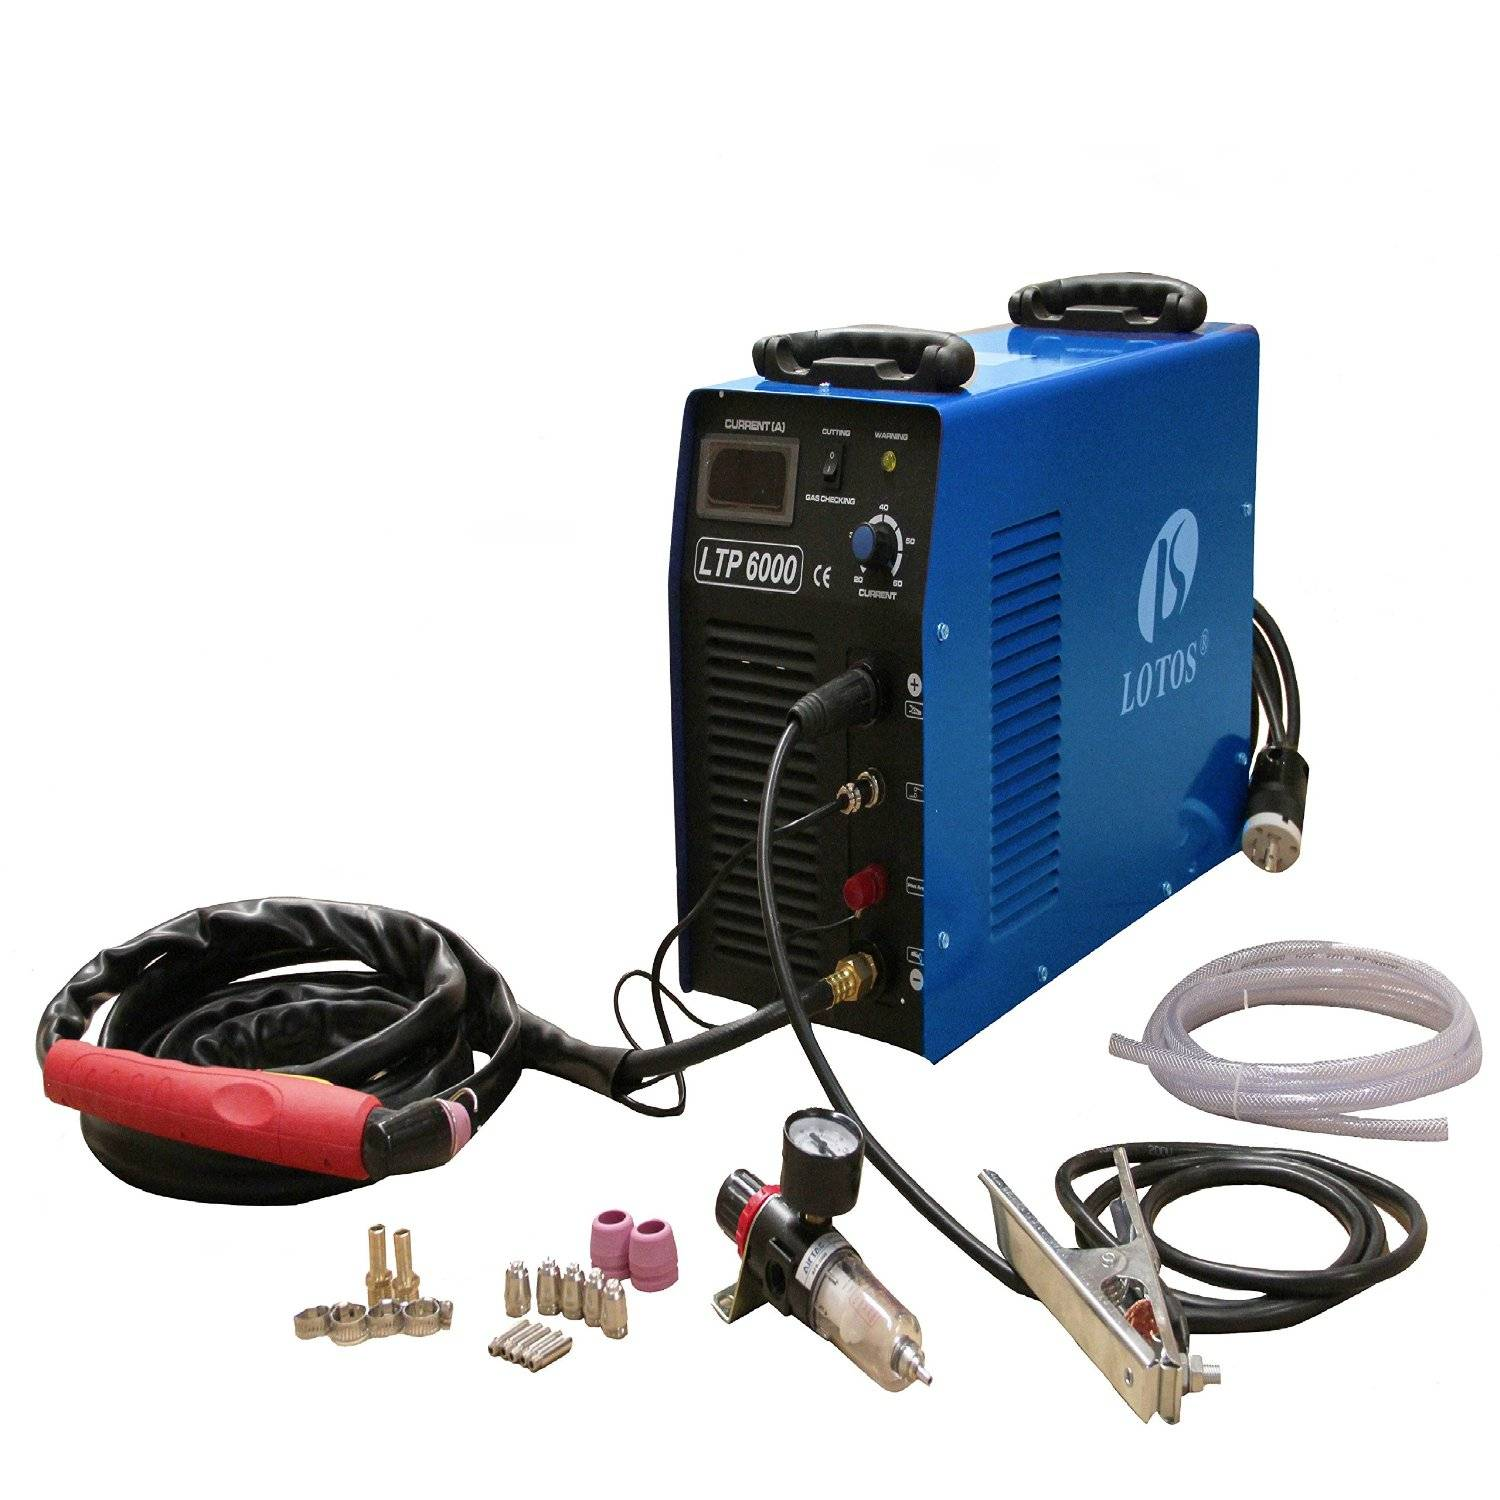 Lotos Technology LTP6000 60 Amp Pilot Arc Plasma Cutter, Blue